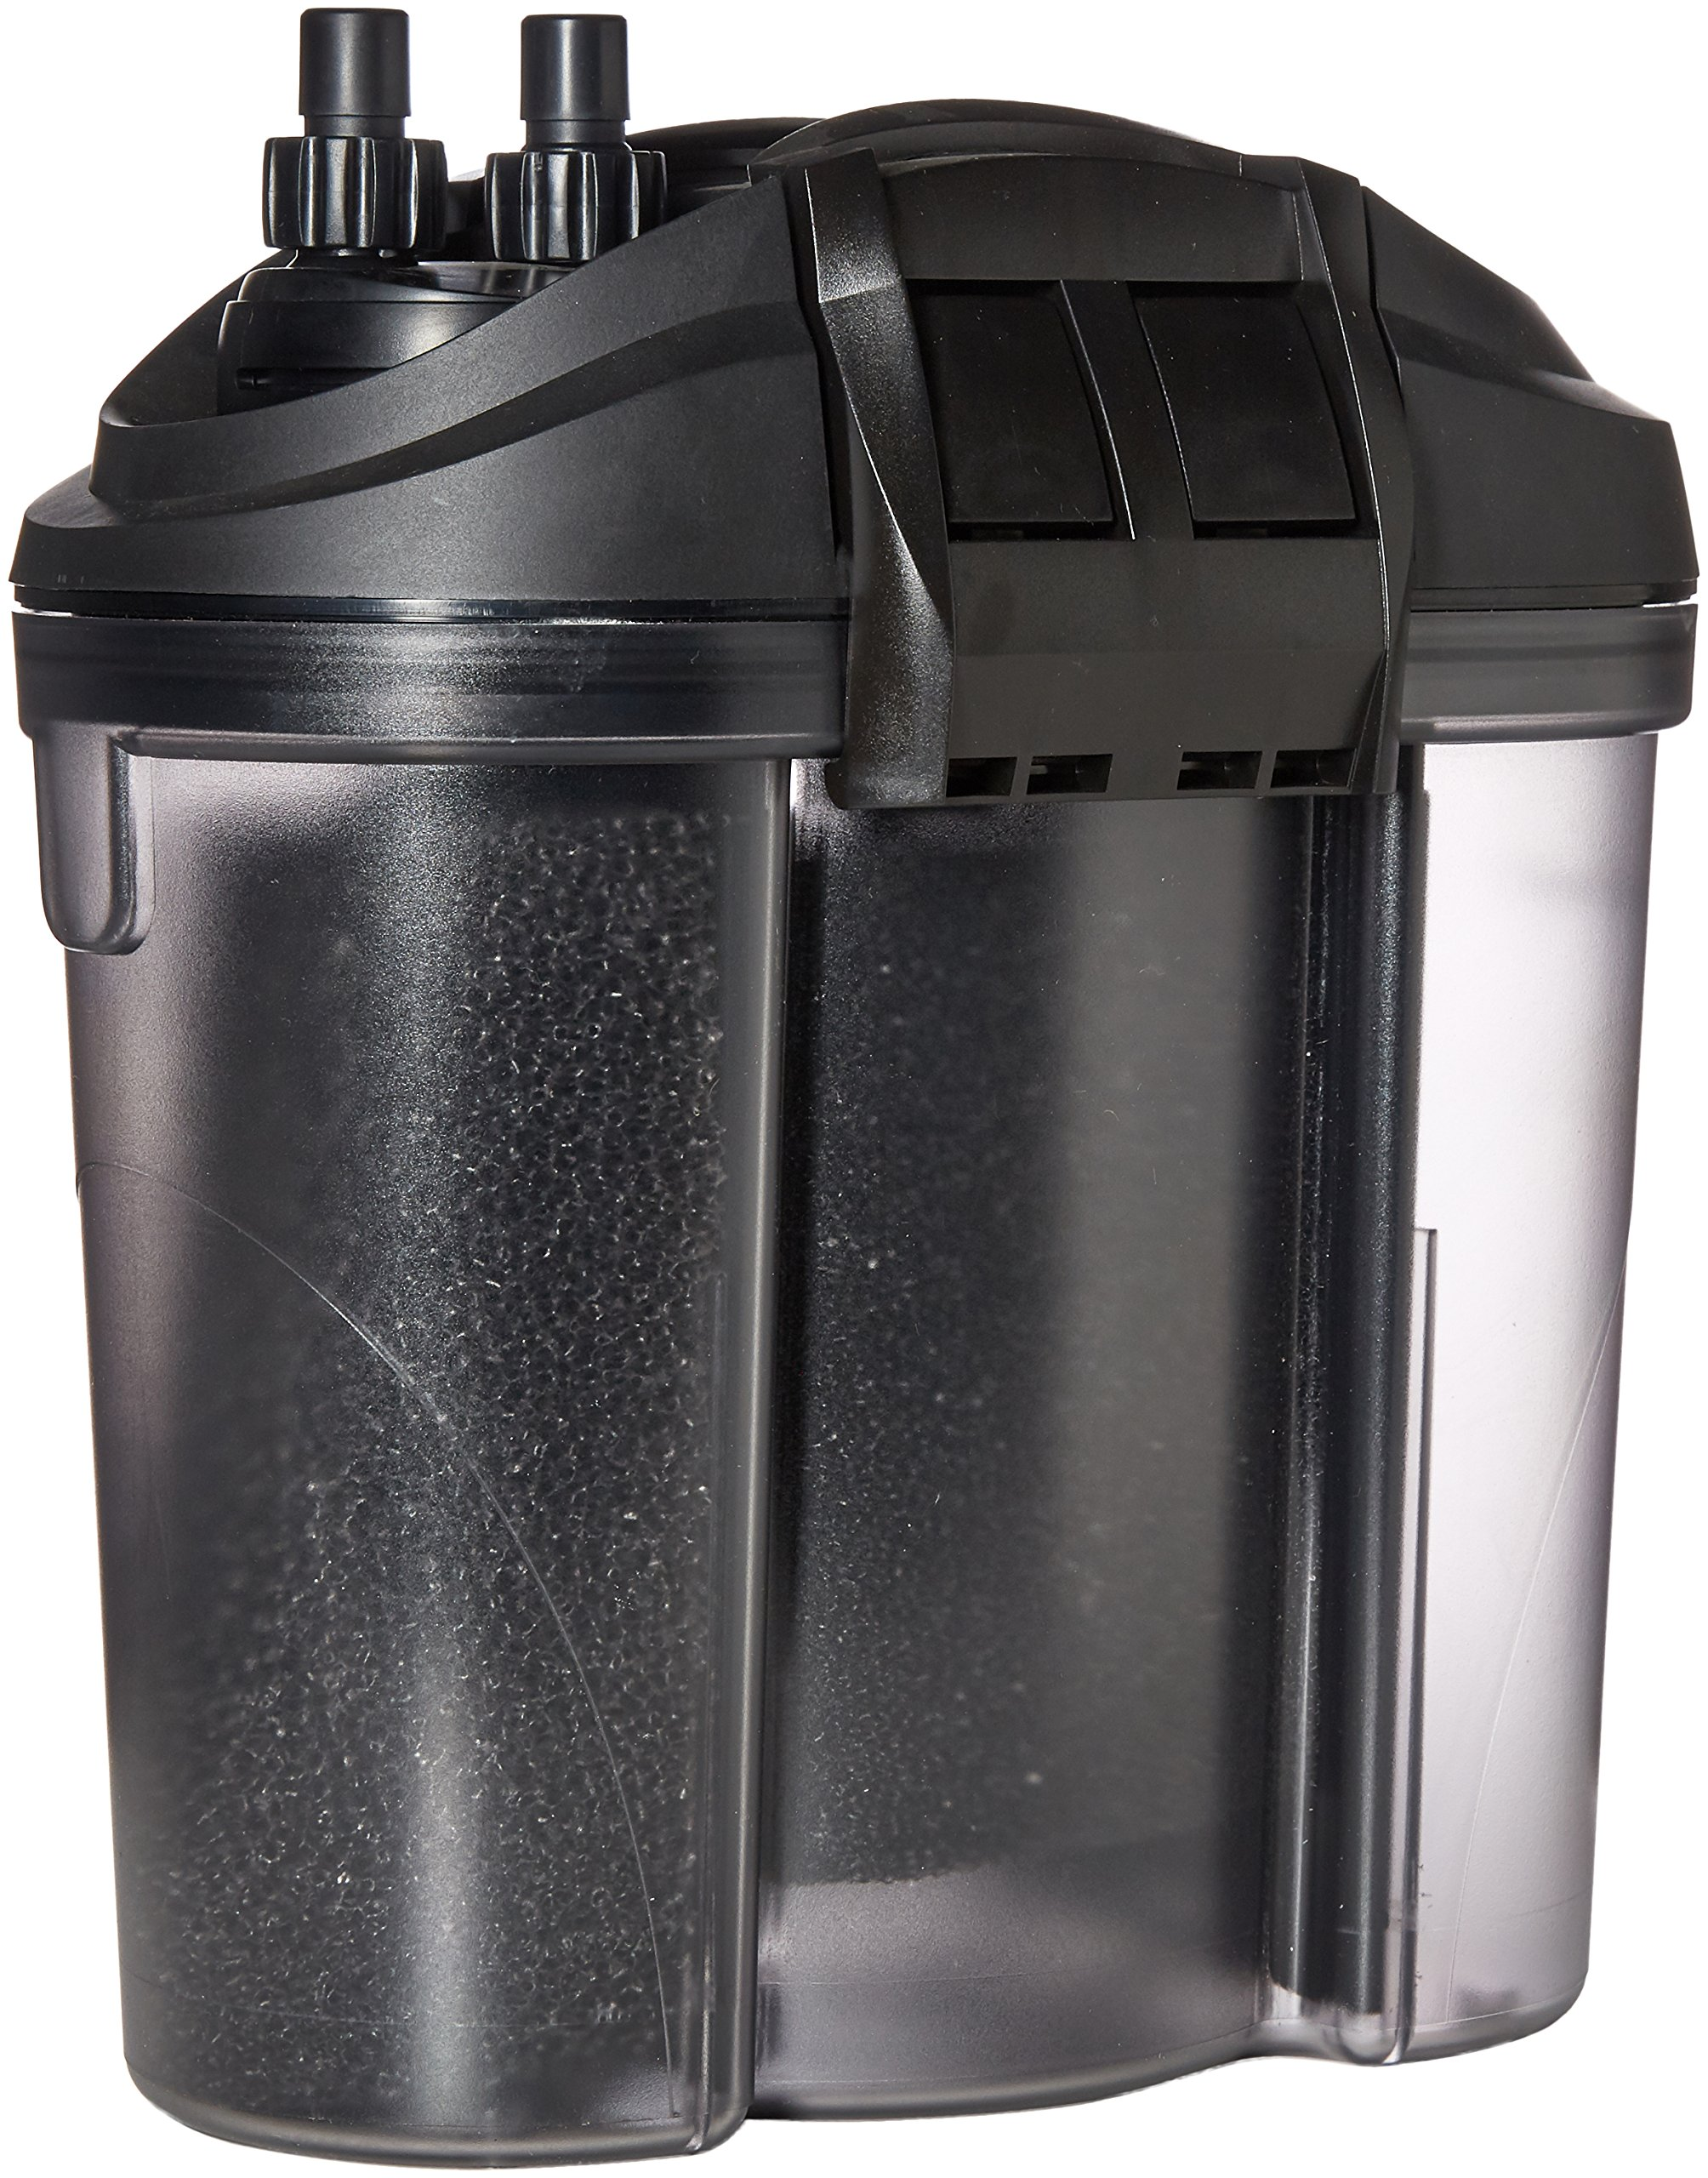 Zoo Med Turtle Clean External Canister Filter, 50-Gallon by Zoo Med